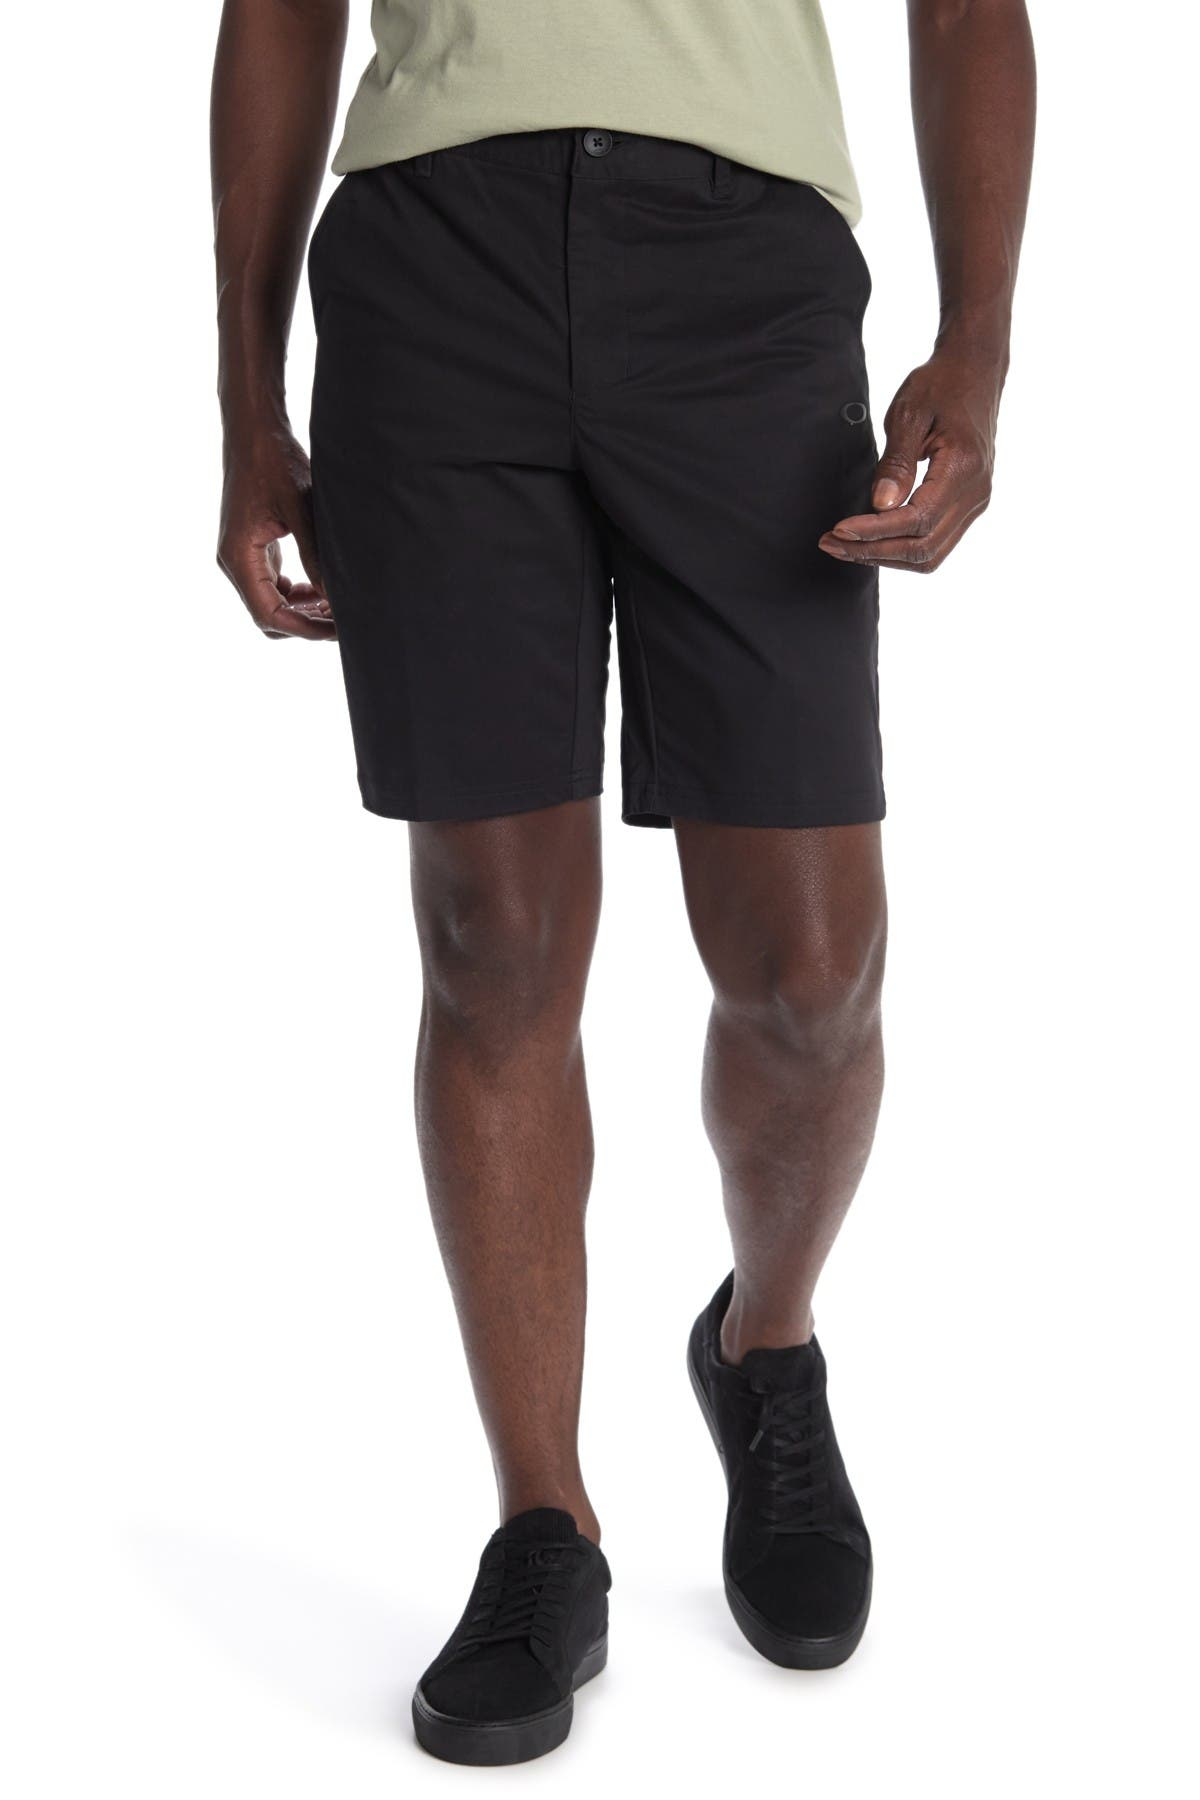 Image of Oakley Icon Chino Golf Shorts